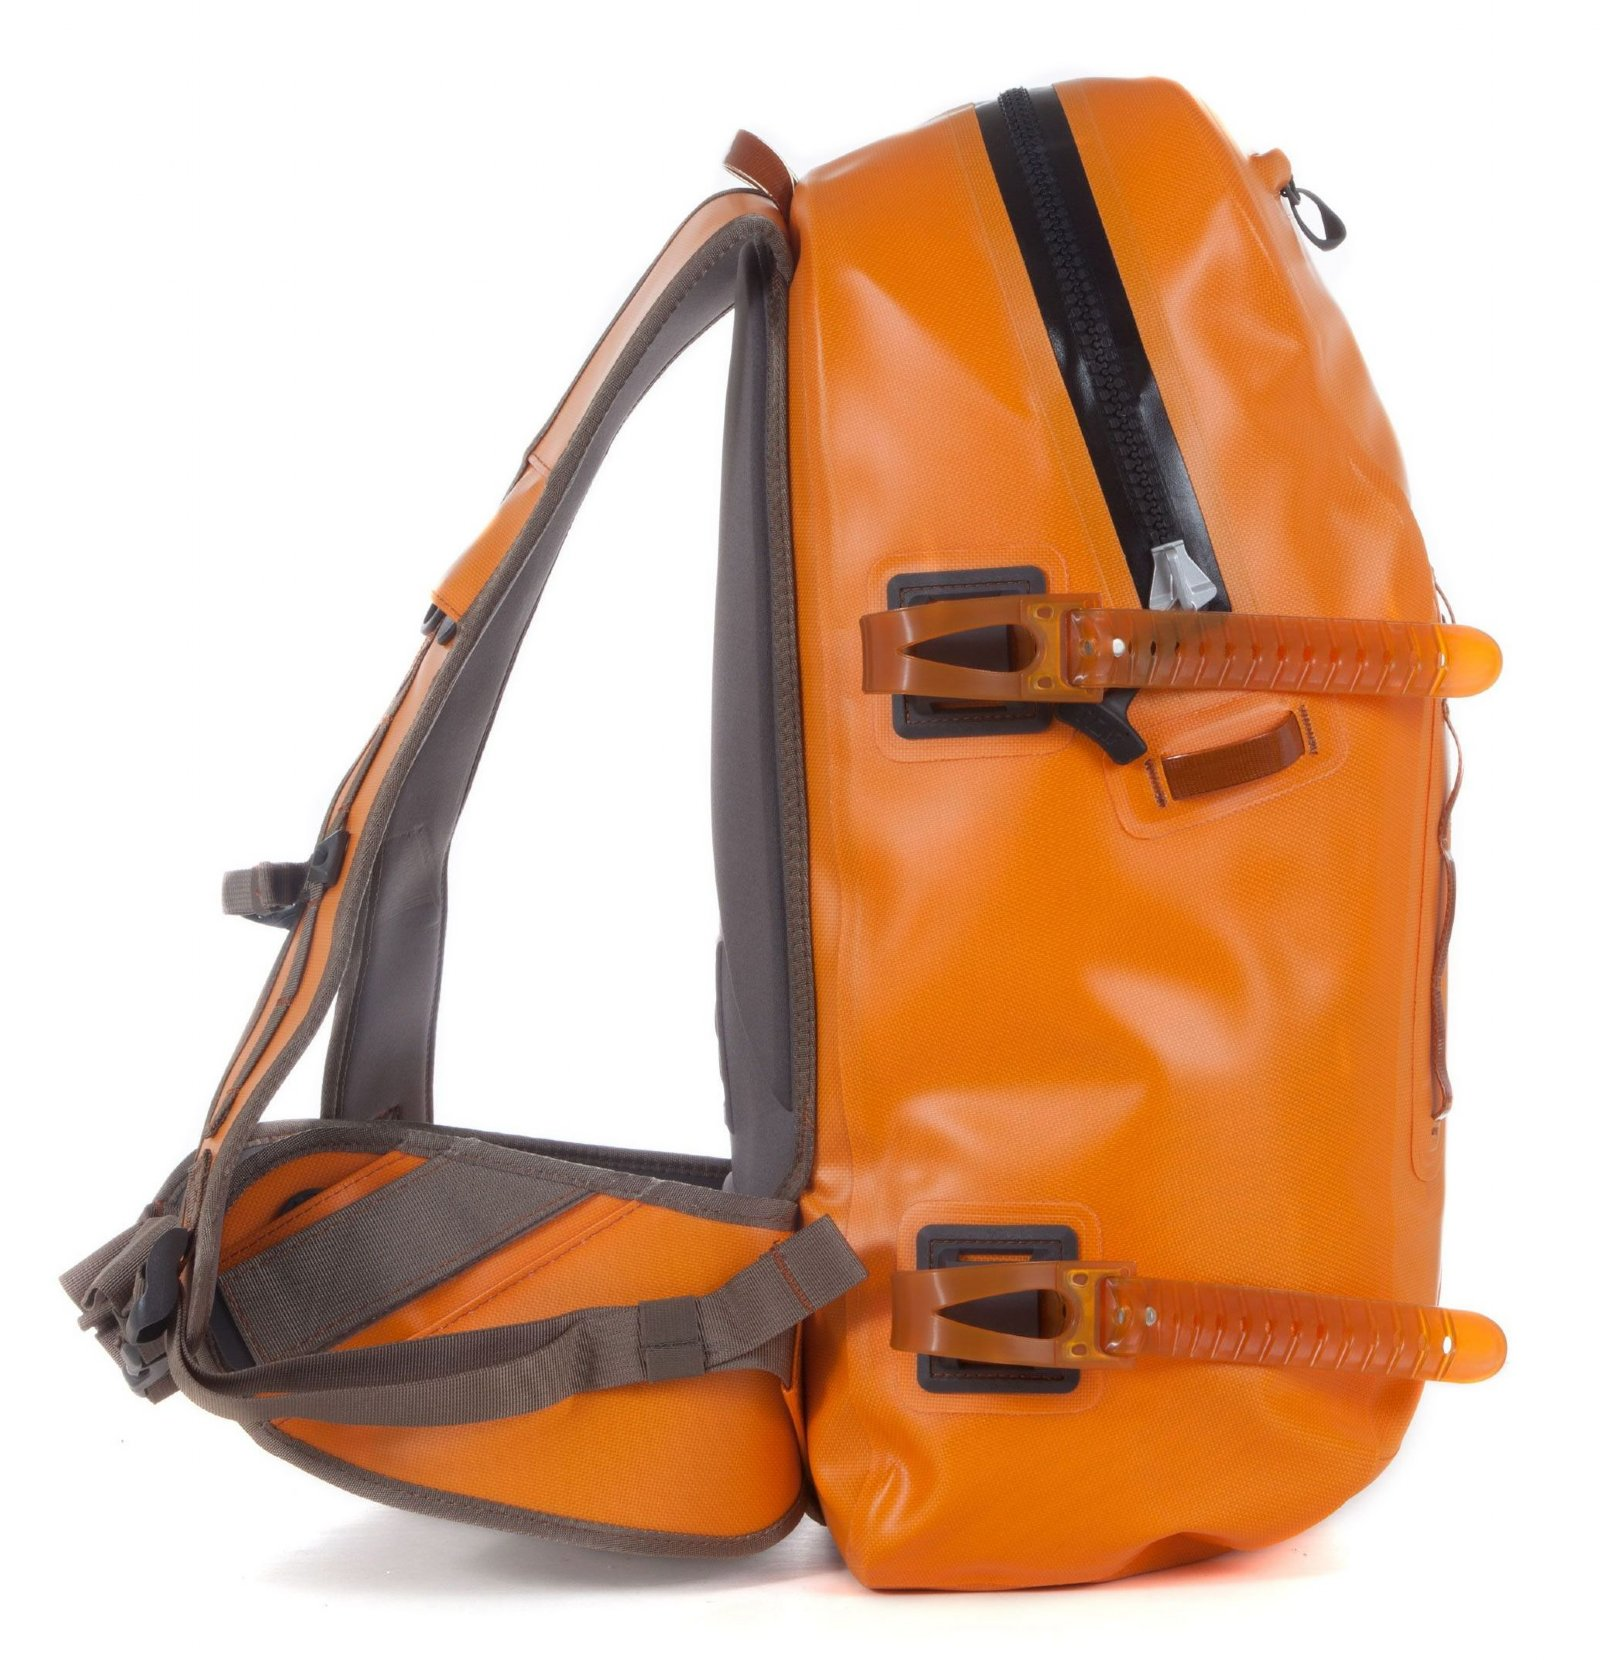 NEW FISHPOND THUNDERHEAD SUBMERSIBLE BACKPACK IN ORANGE FREE US SHIPPING